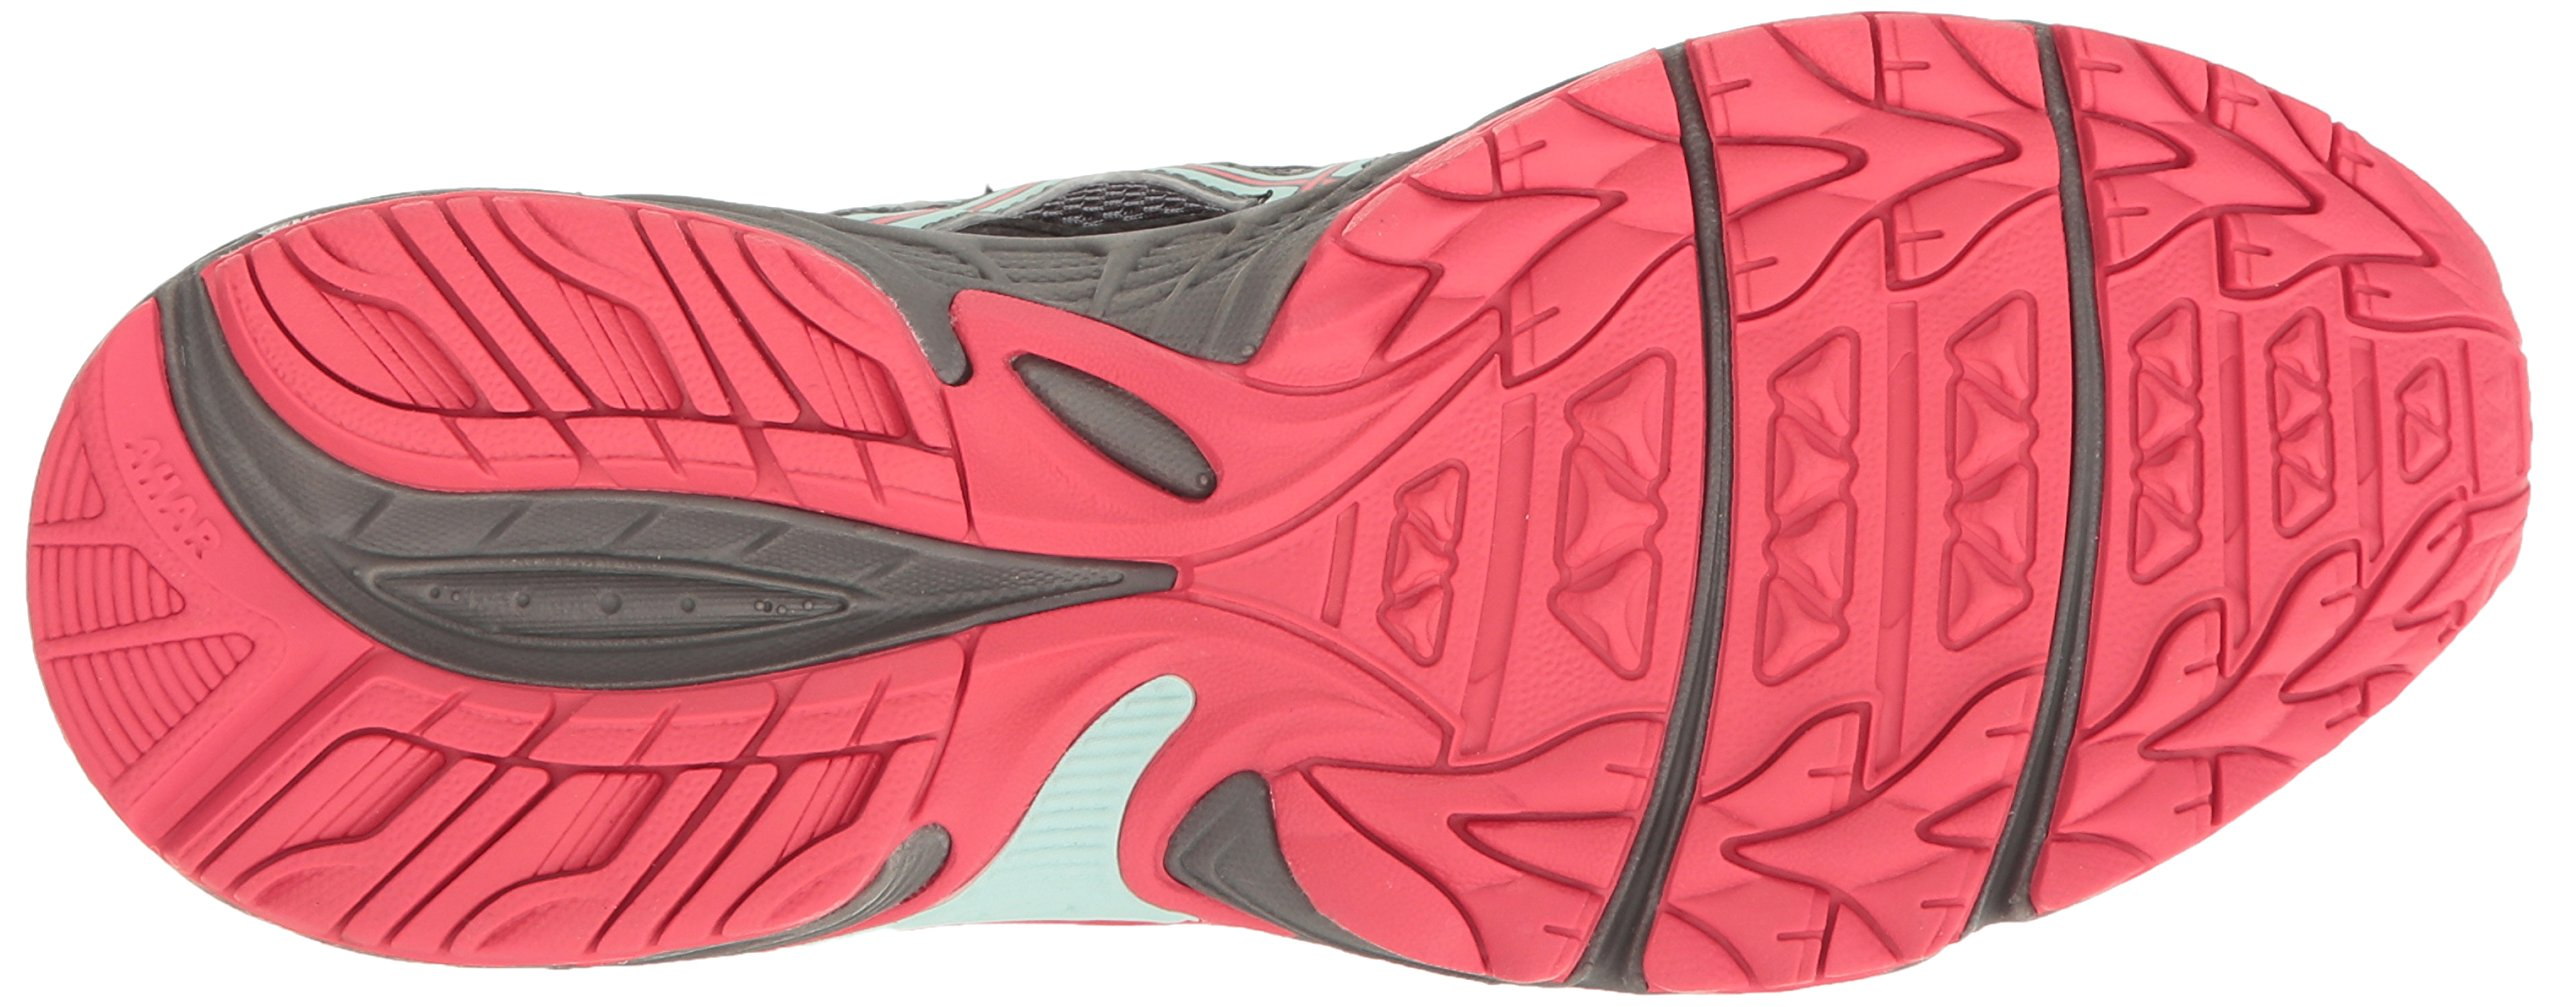 ASICS Women's Gel-Venture 5 Trail Runner, Carbon/Diva Pink/Bay, 9 M US by ASICS (Image #3)